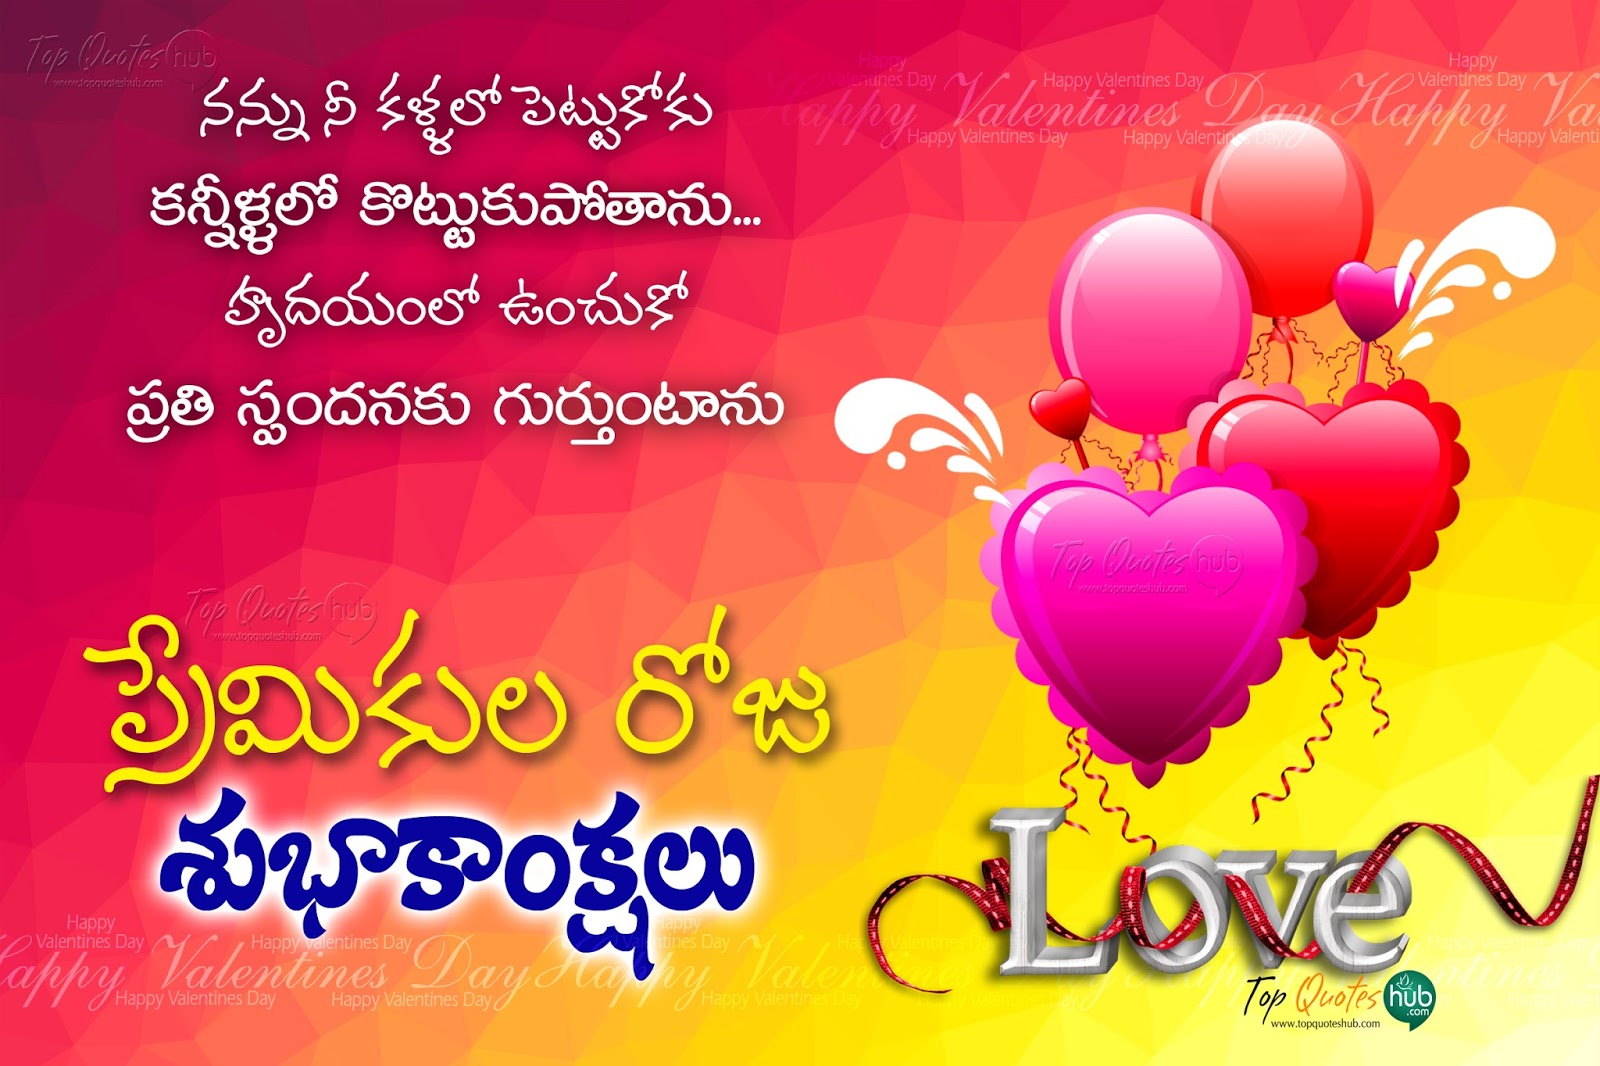 Valentines Day Whatsapp Images In Telugu For Lovers Topquoteshub